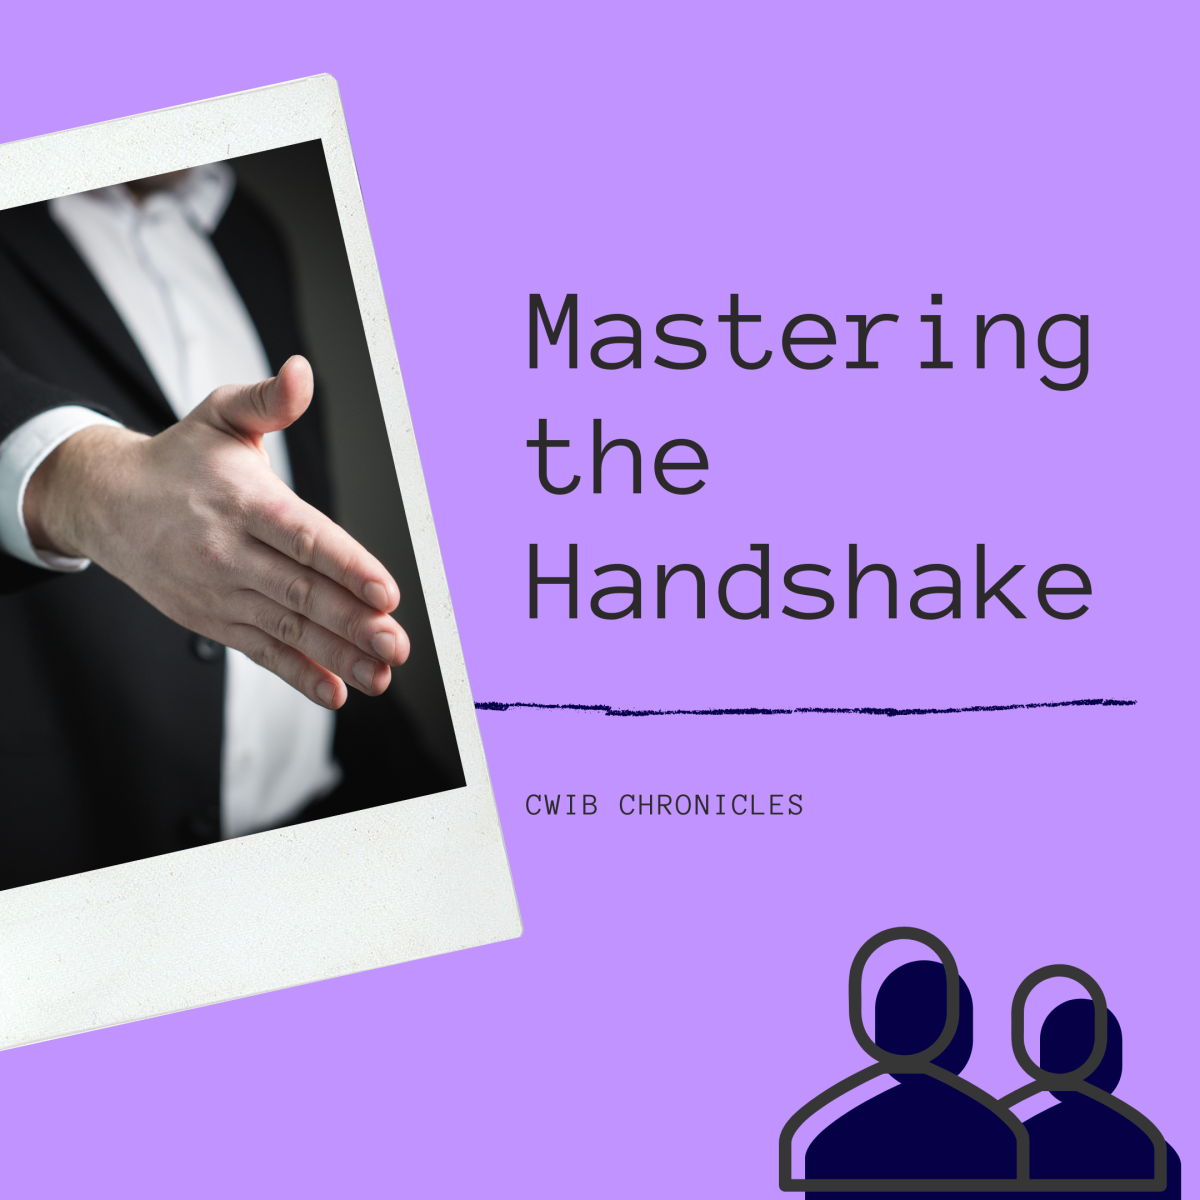 Mastering the Handshake